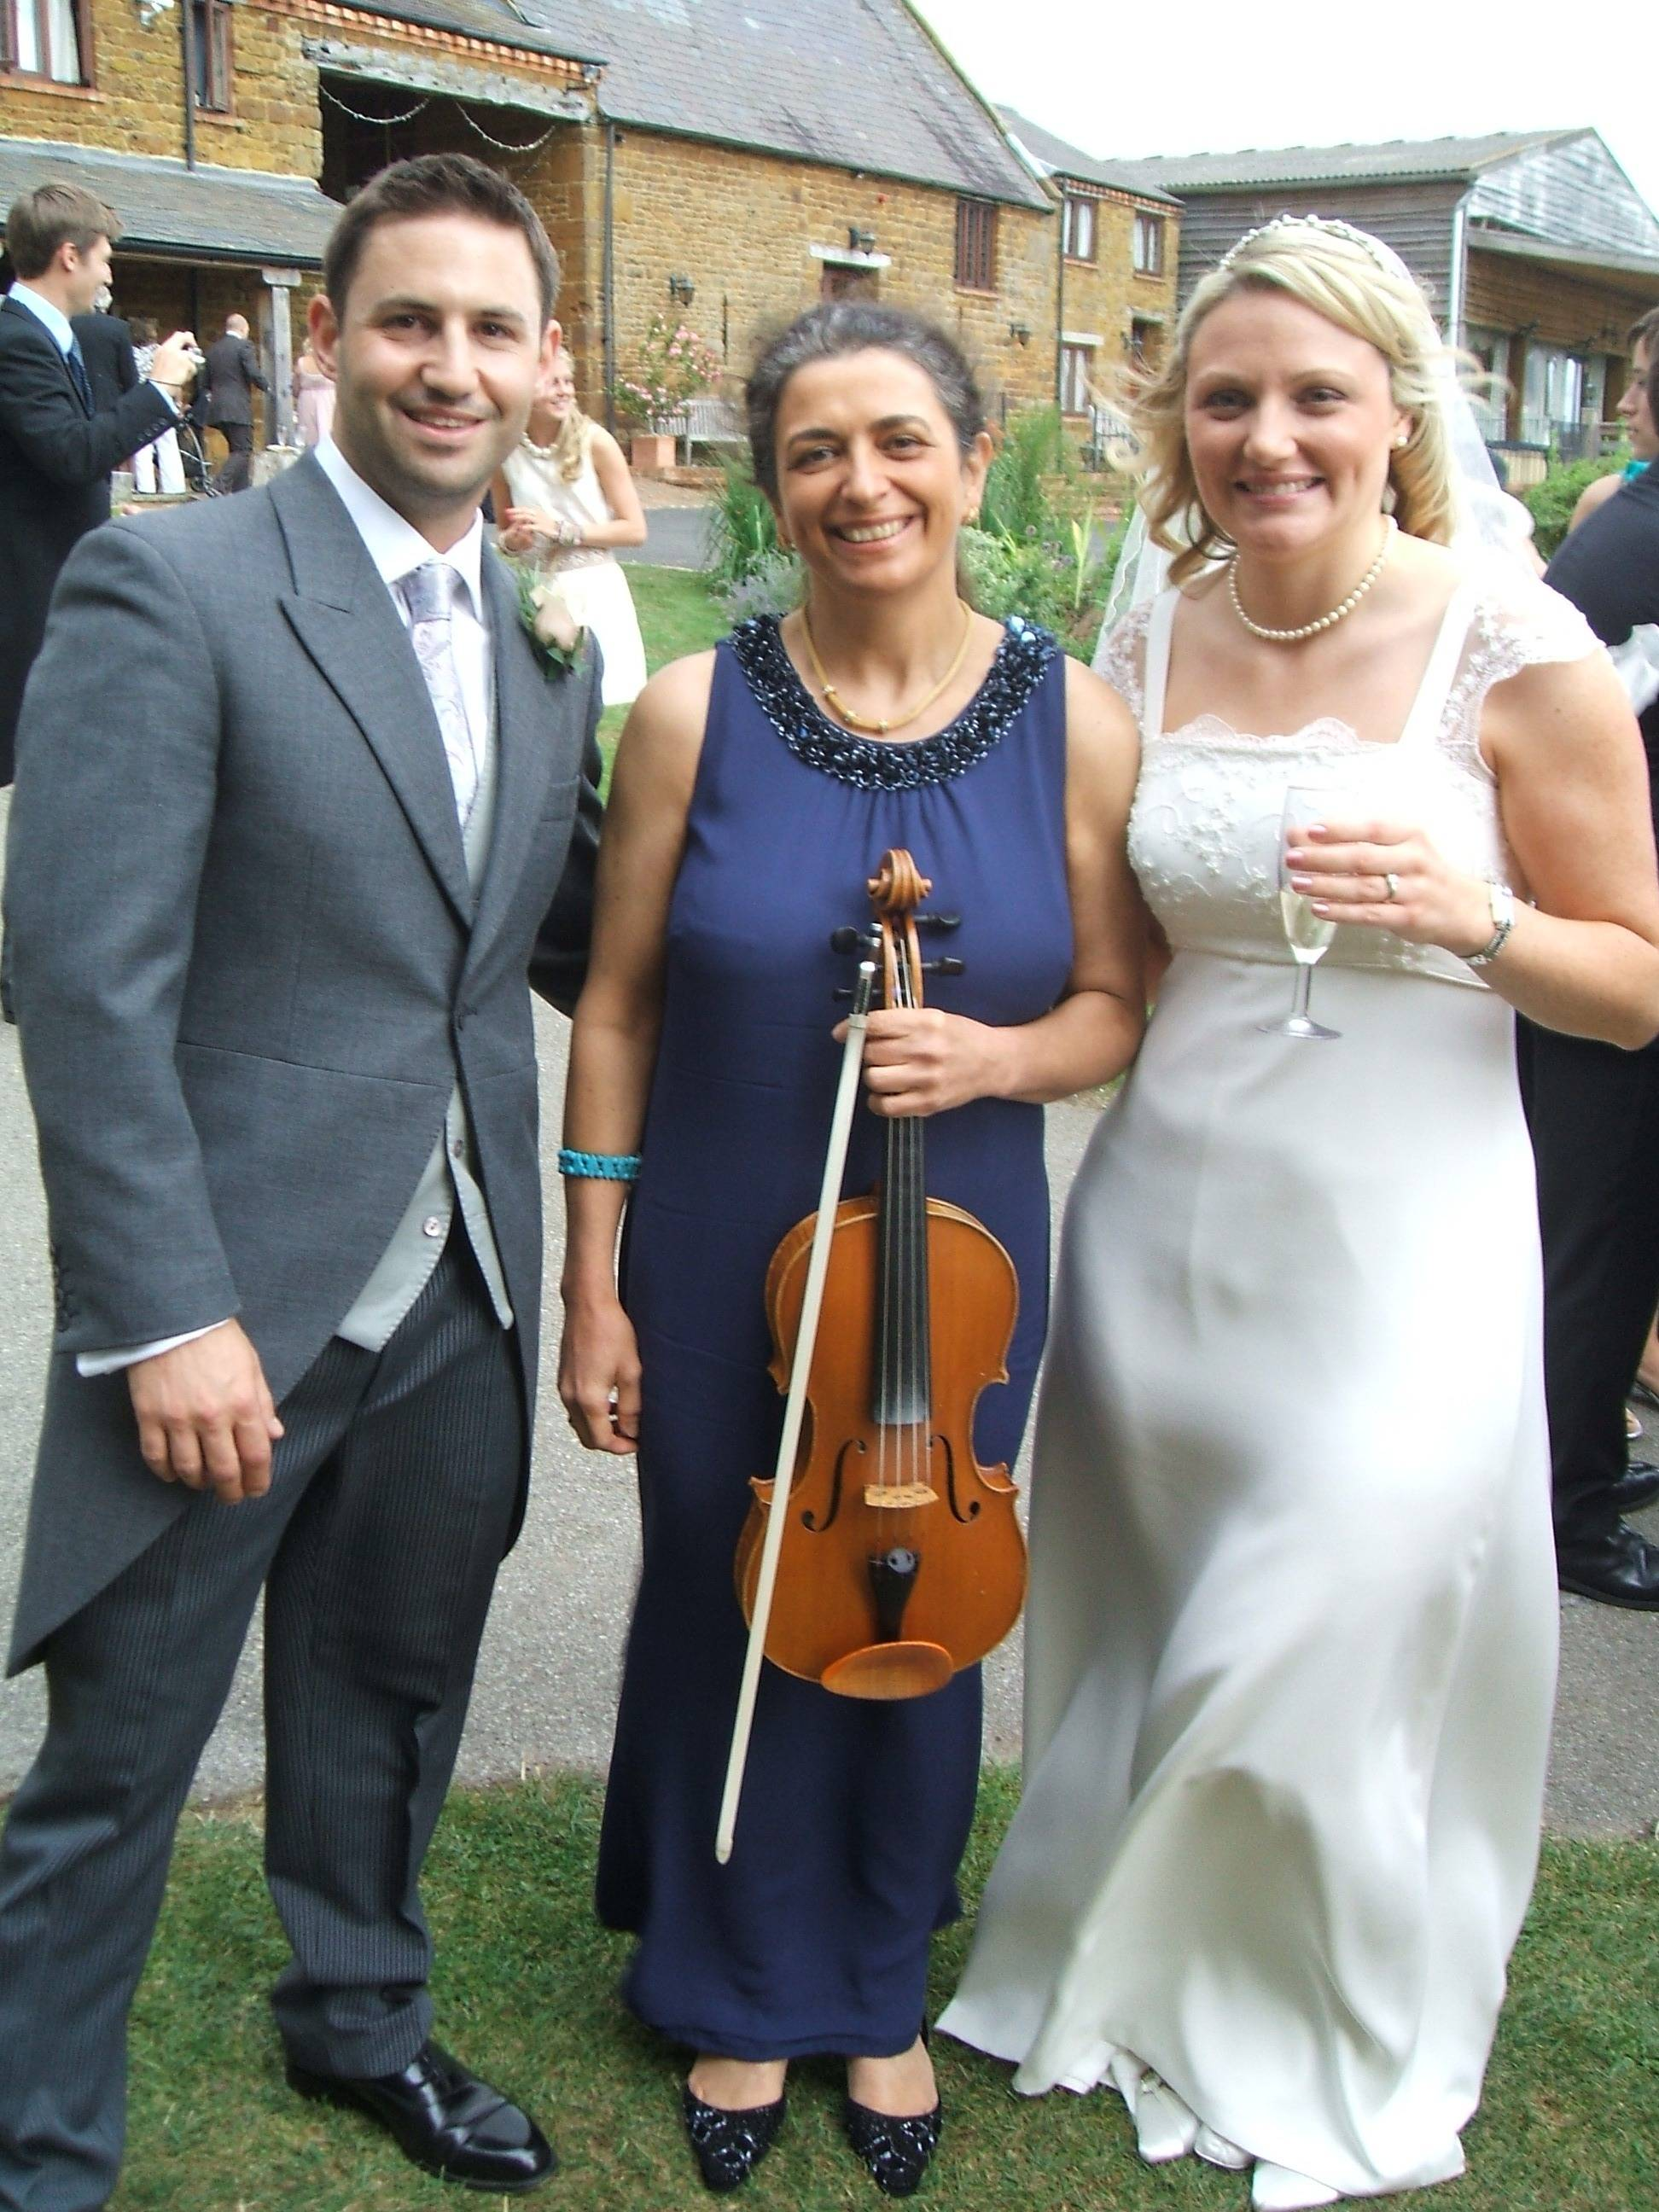 Professional wedding musician in Oxford. Violin, viola. Ceremony, reception, your favourite music played on the mellow viola